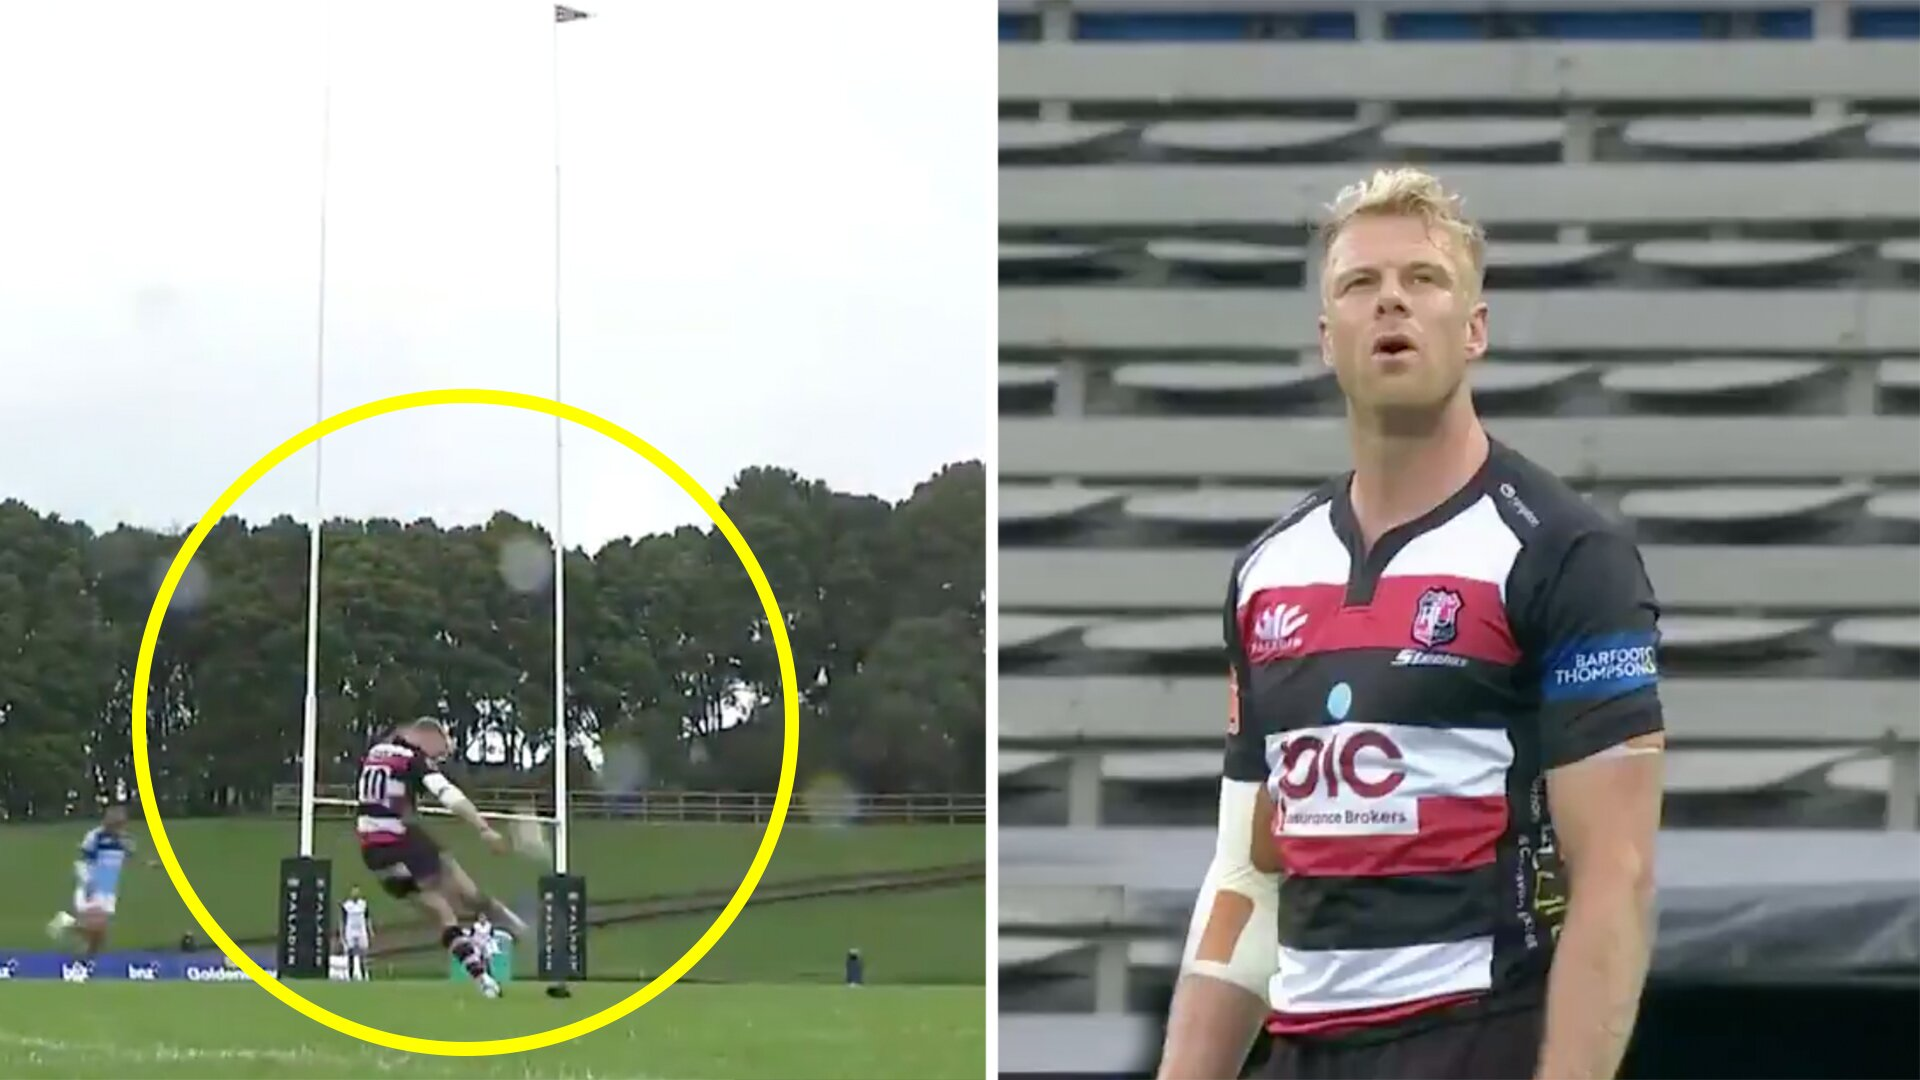 Mitre 10 player stuns fans with this bizarre moment after a kick attempt